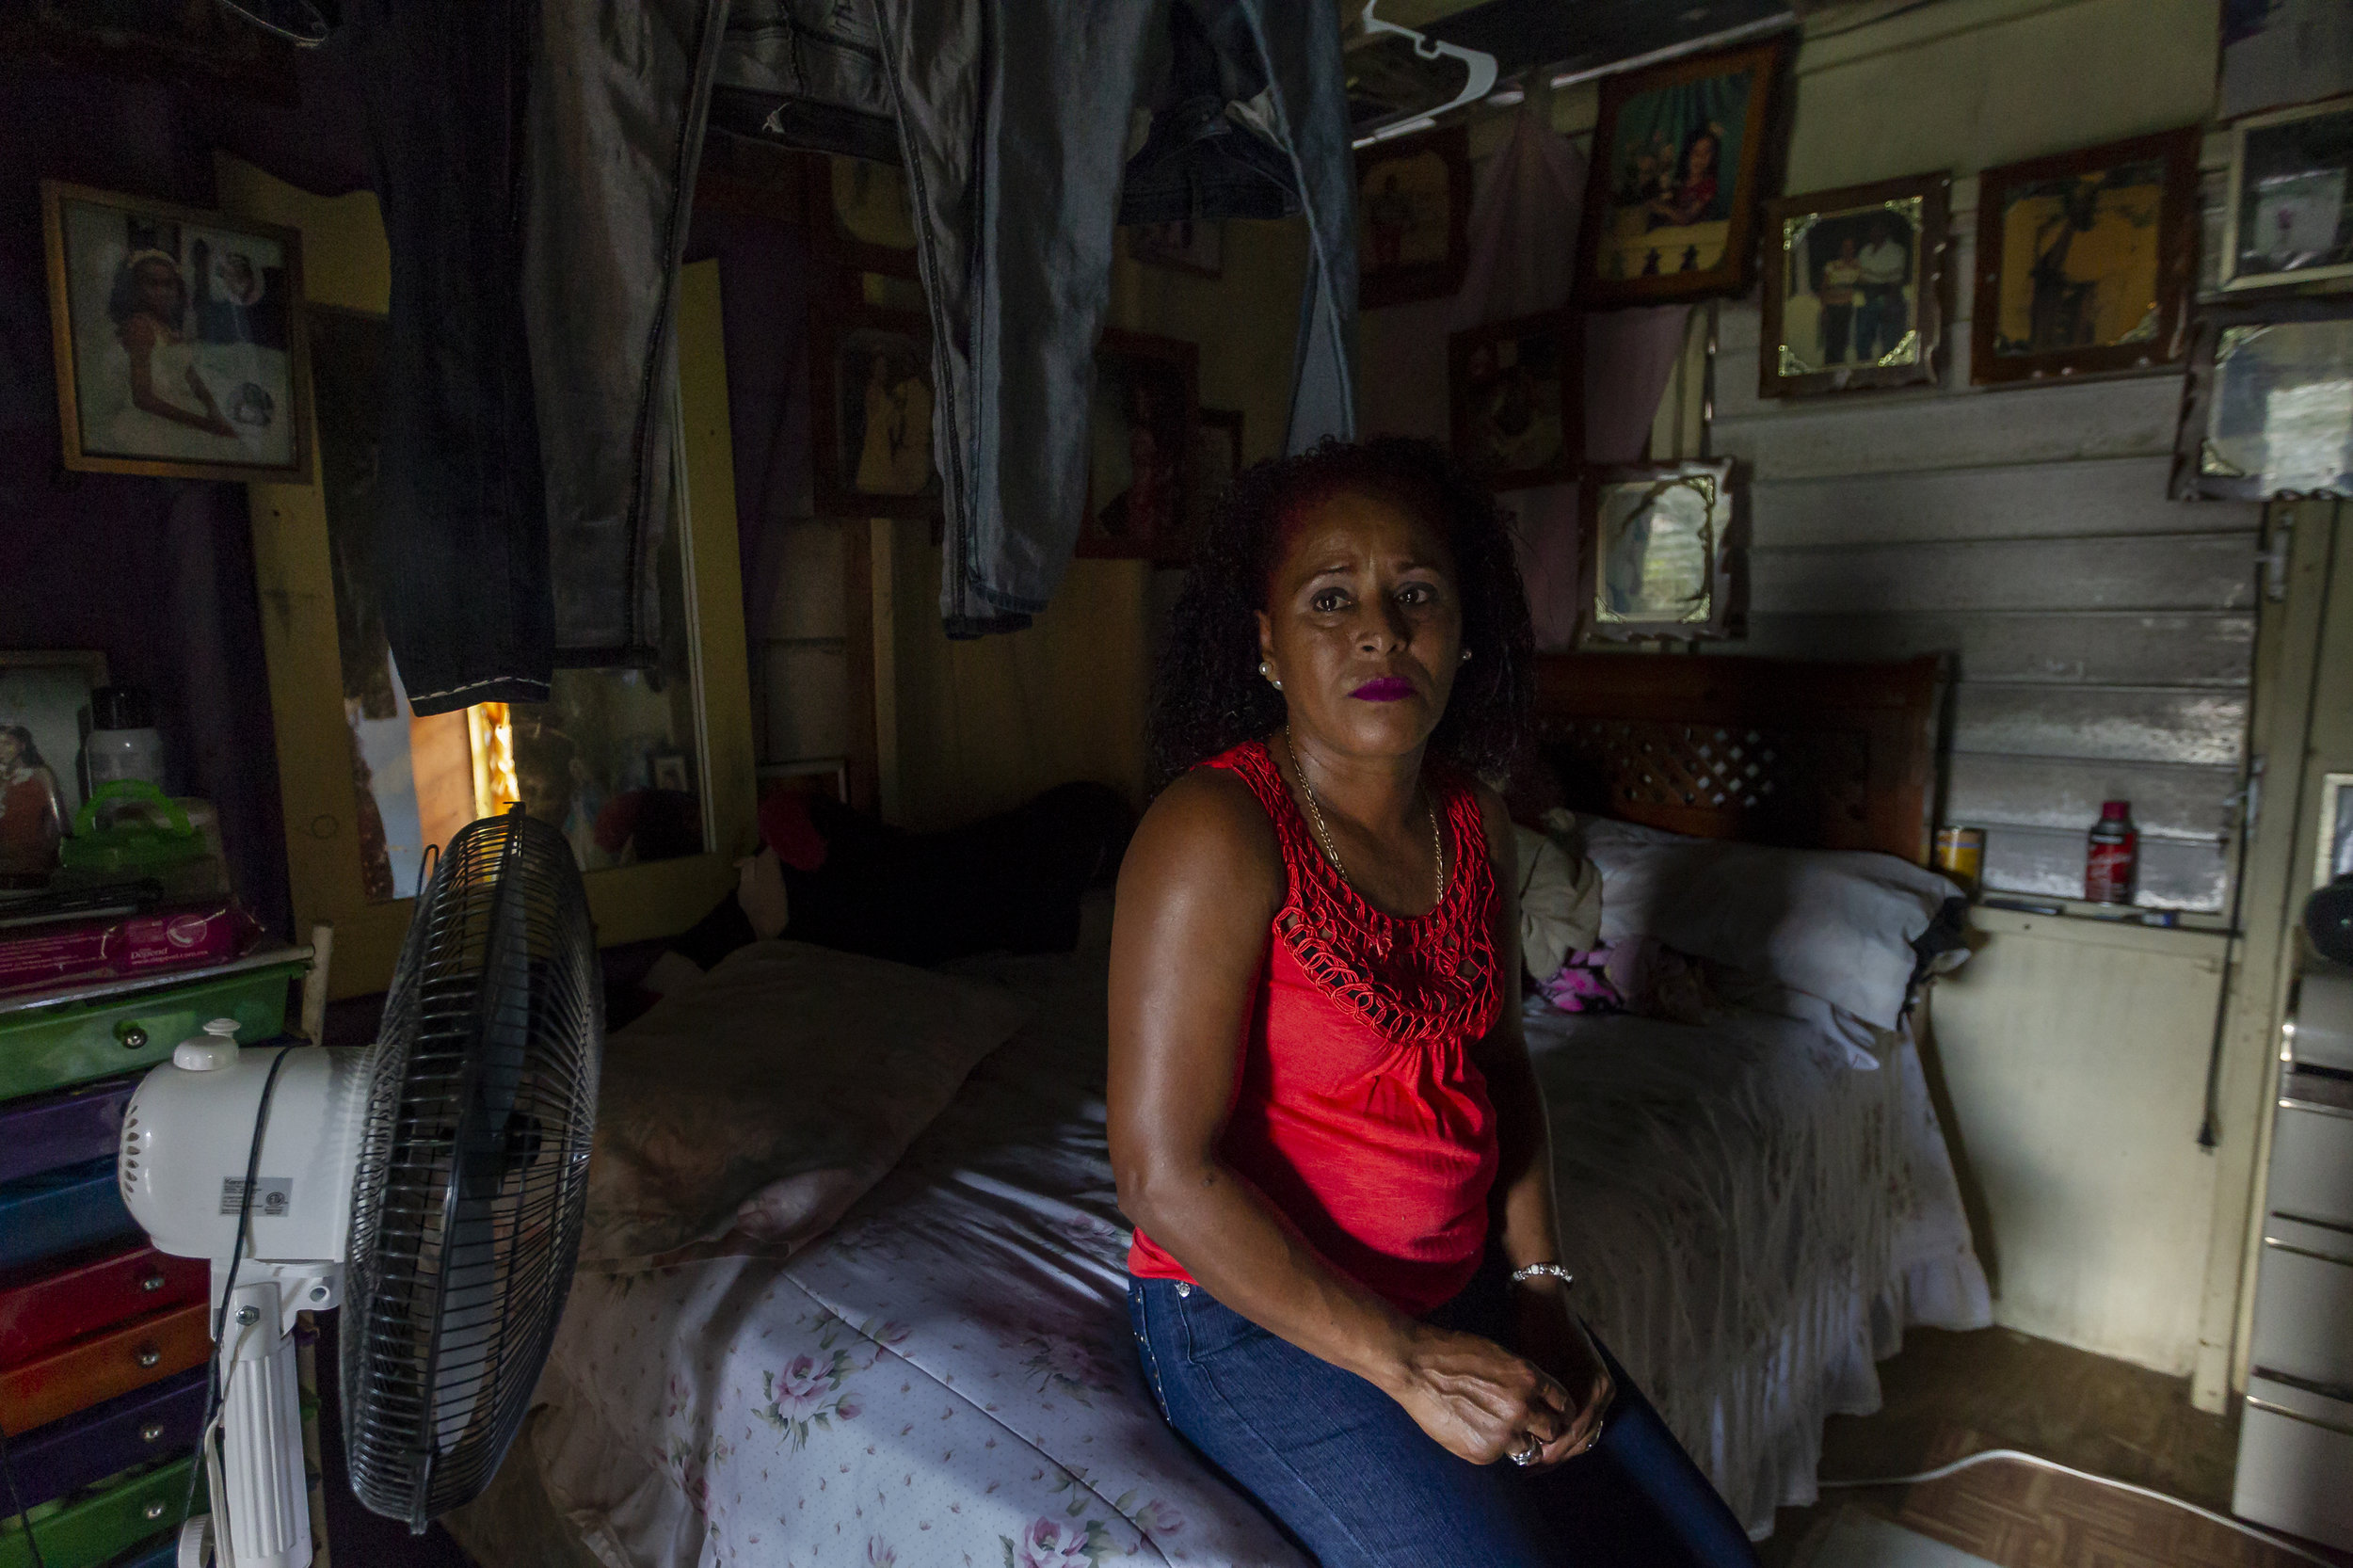 Merry Perez Colon, 51, lives in a damaged home with four family members in La Juncia community of Comerío, Puerto Rico on August, 25, 2018. Perez Colon and her family were denied federal disaster aid.